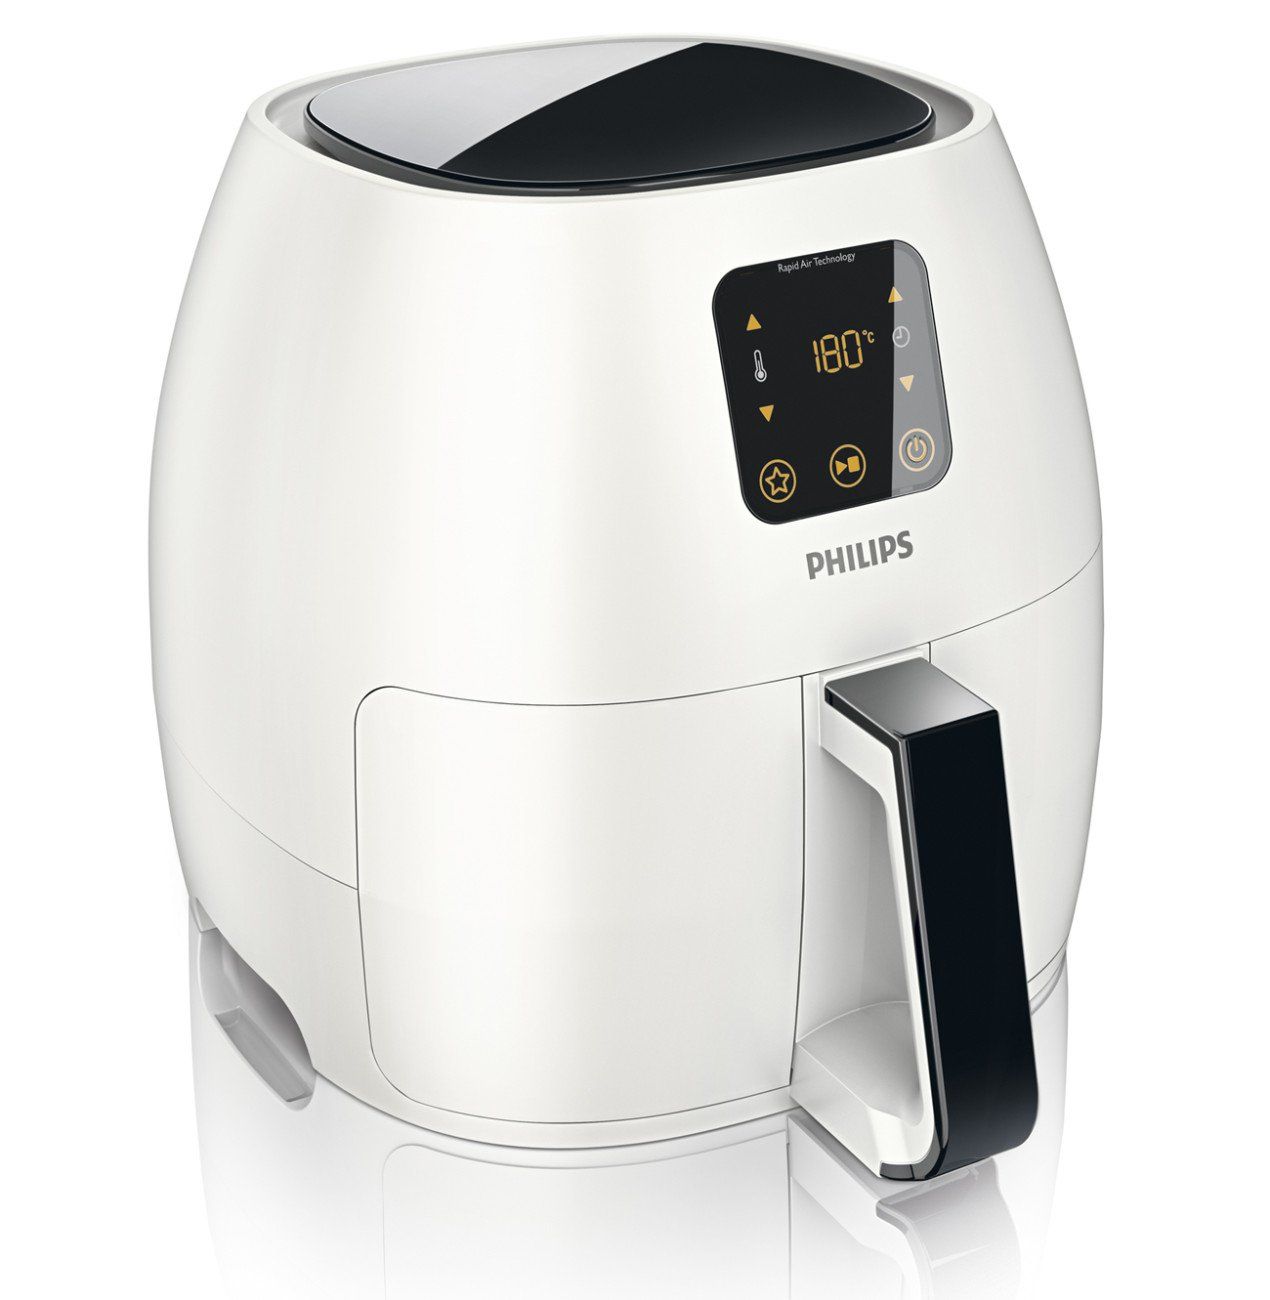 Philips XL Airfryer, The Original Airfryer, Fry Healthy with 75% Less Fat, White, HD9240/34 by Philips (Image #2)